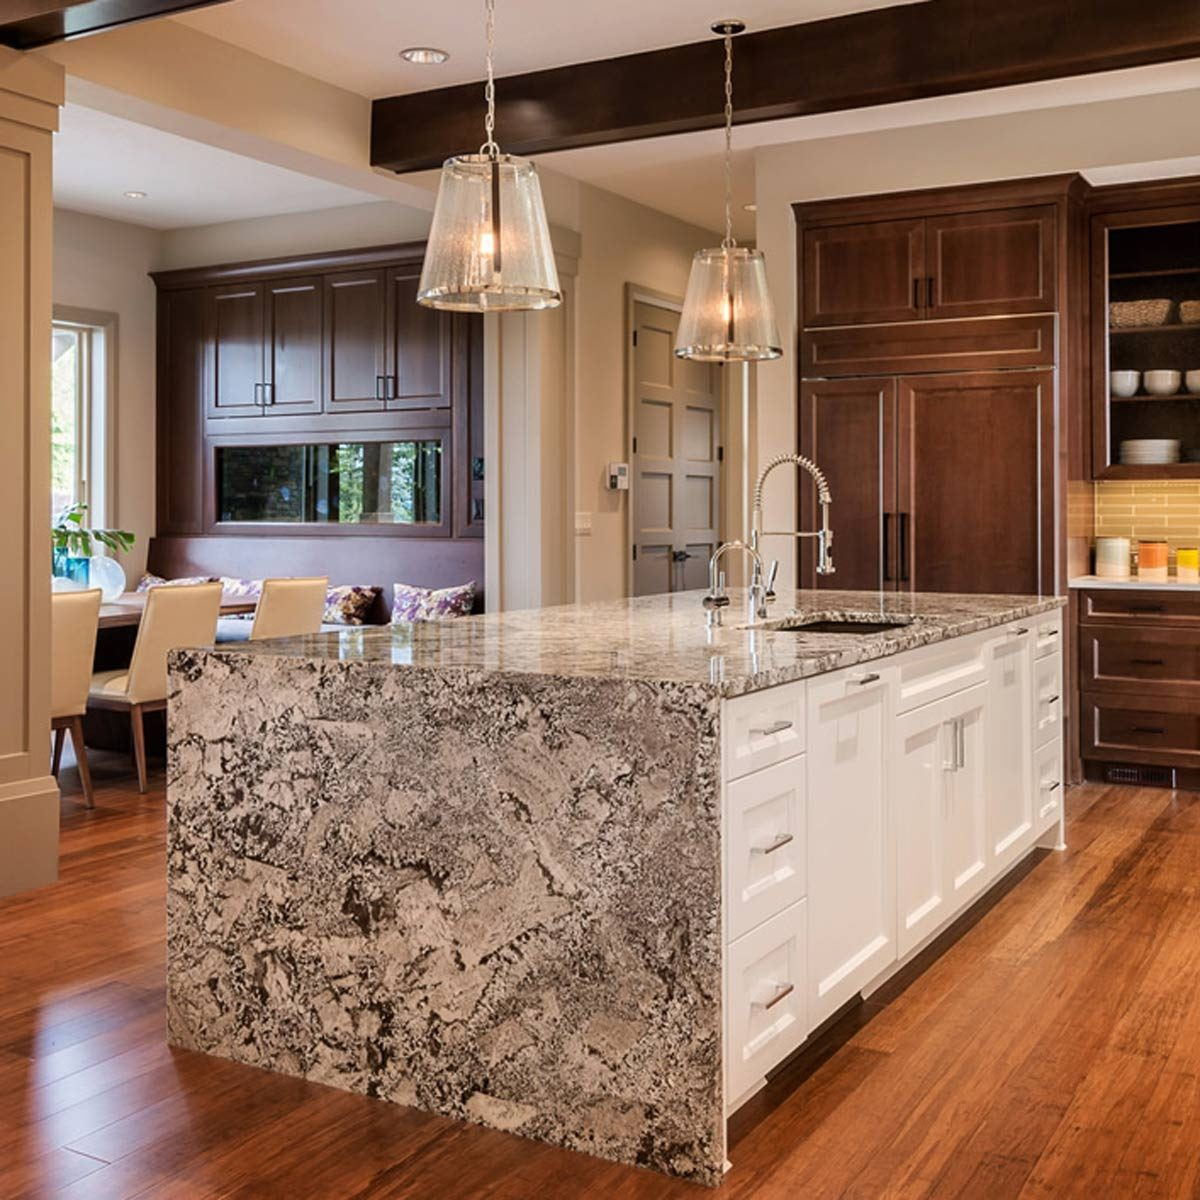 Quartz Kitchen Ideas: 10 Kitchen Countertop Ideas People Are Doing Right Now